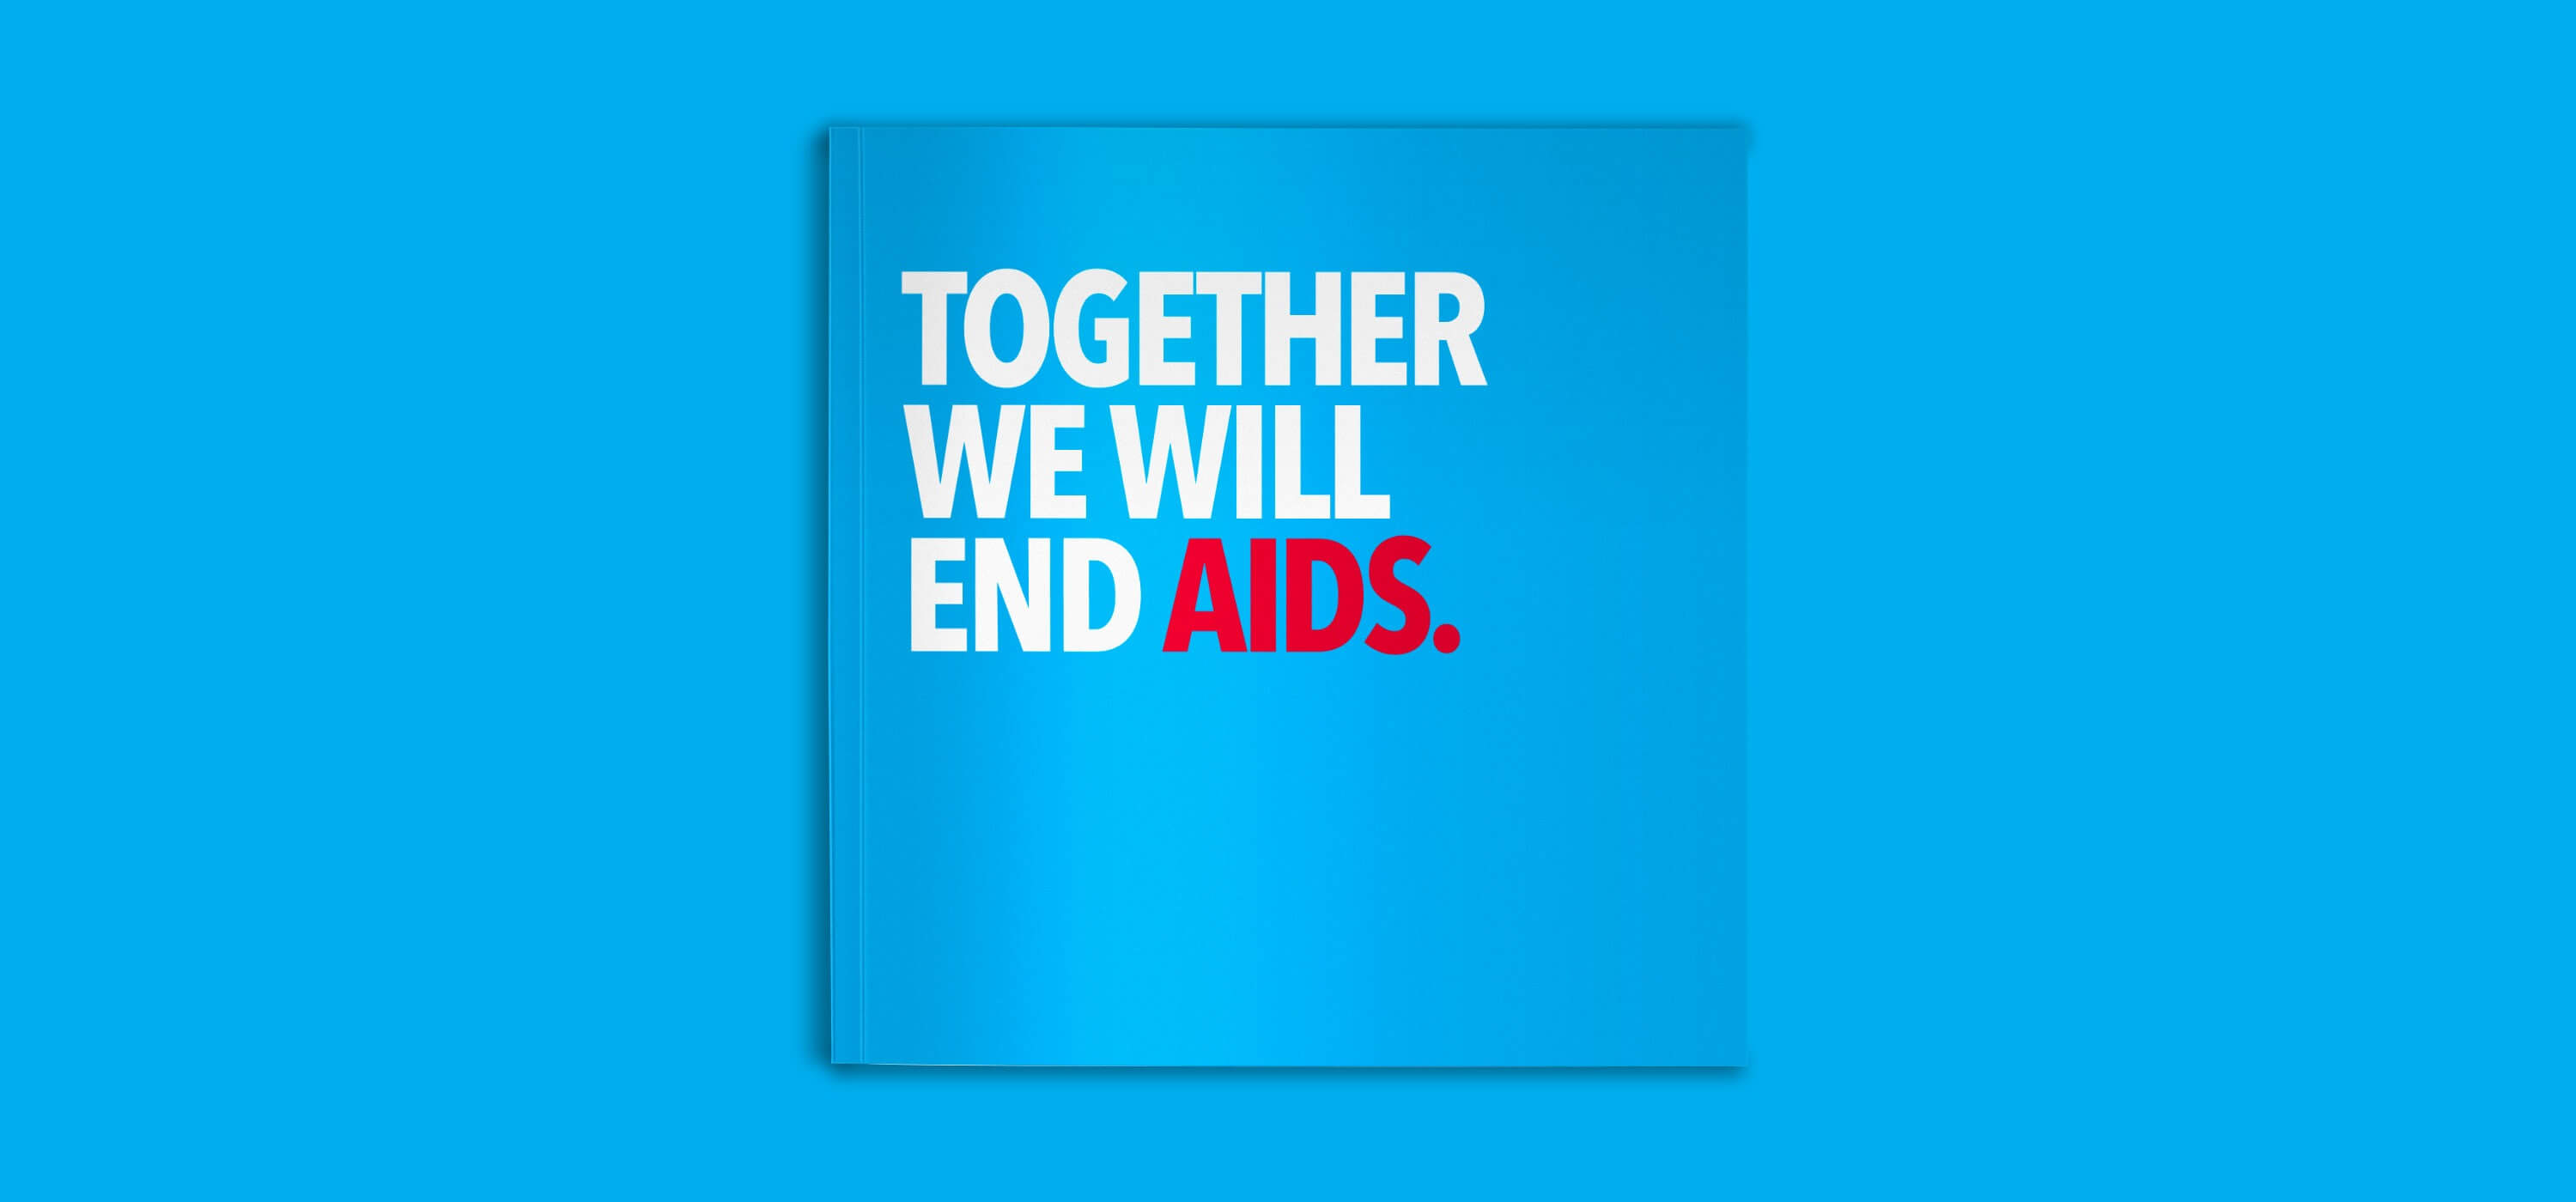 UNAIDS Together We Will End AIDS - Blossom